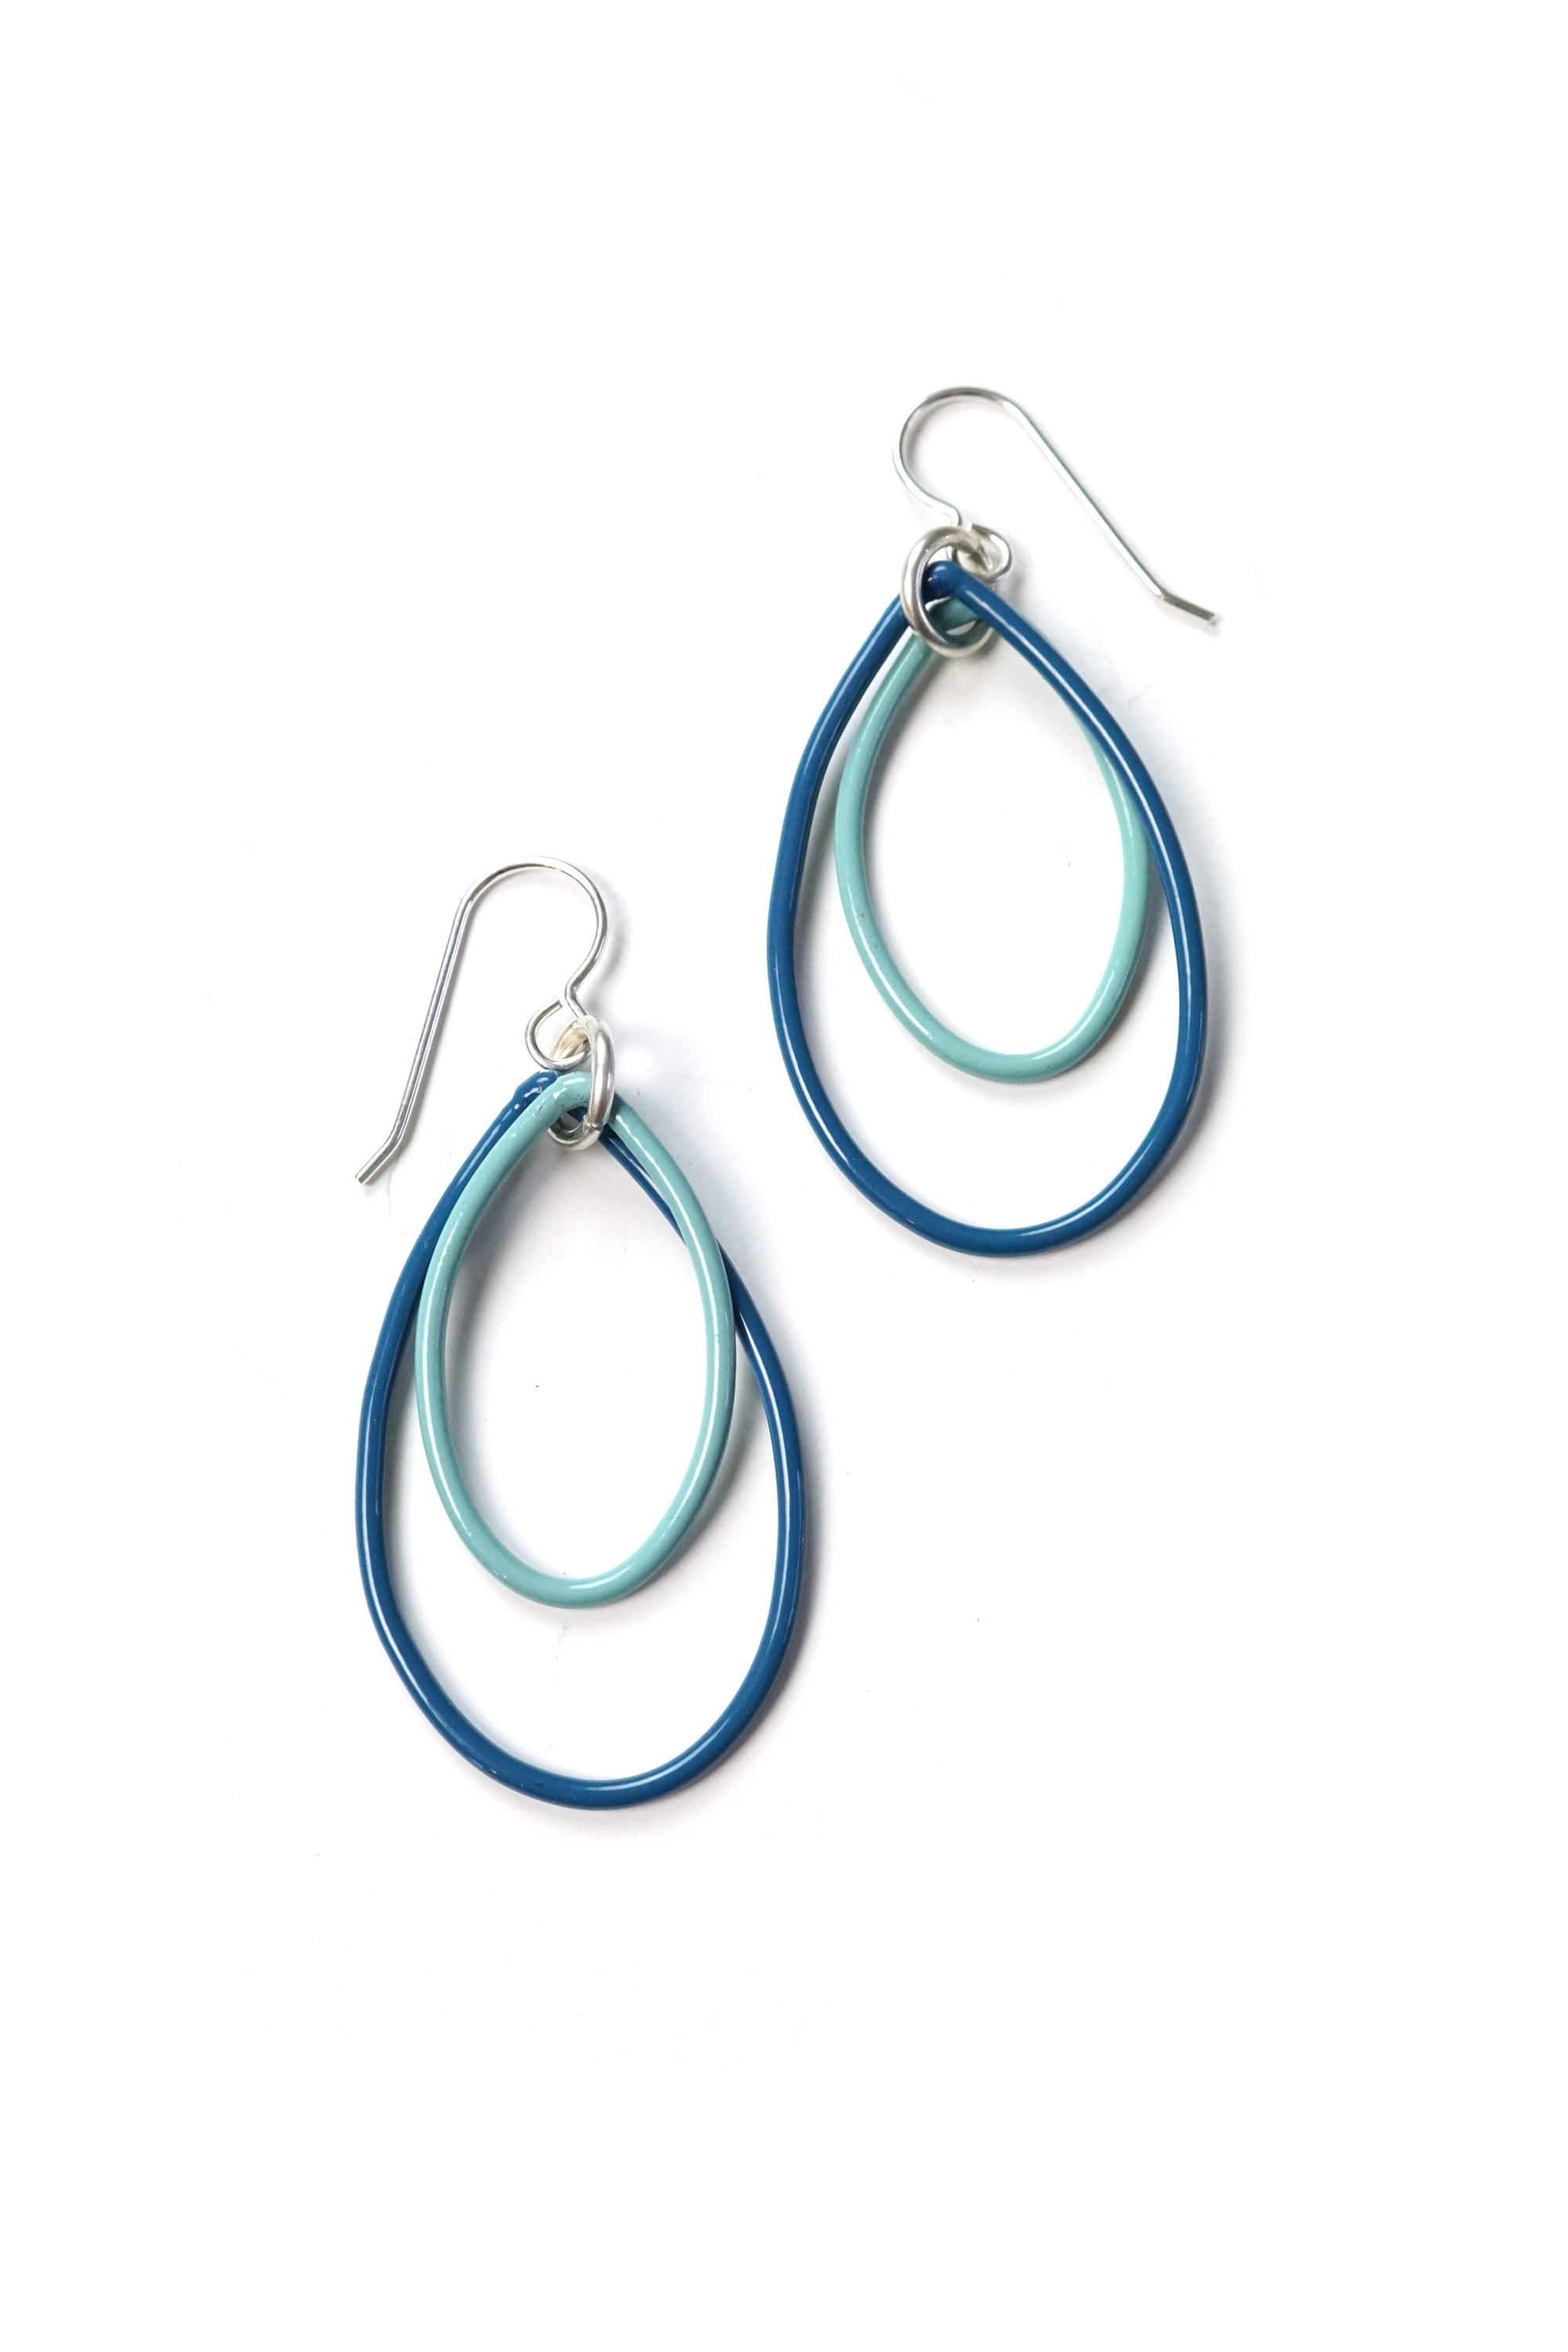 Nellie earrings in Azure Blue and Faded Teal